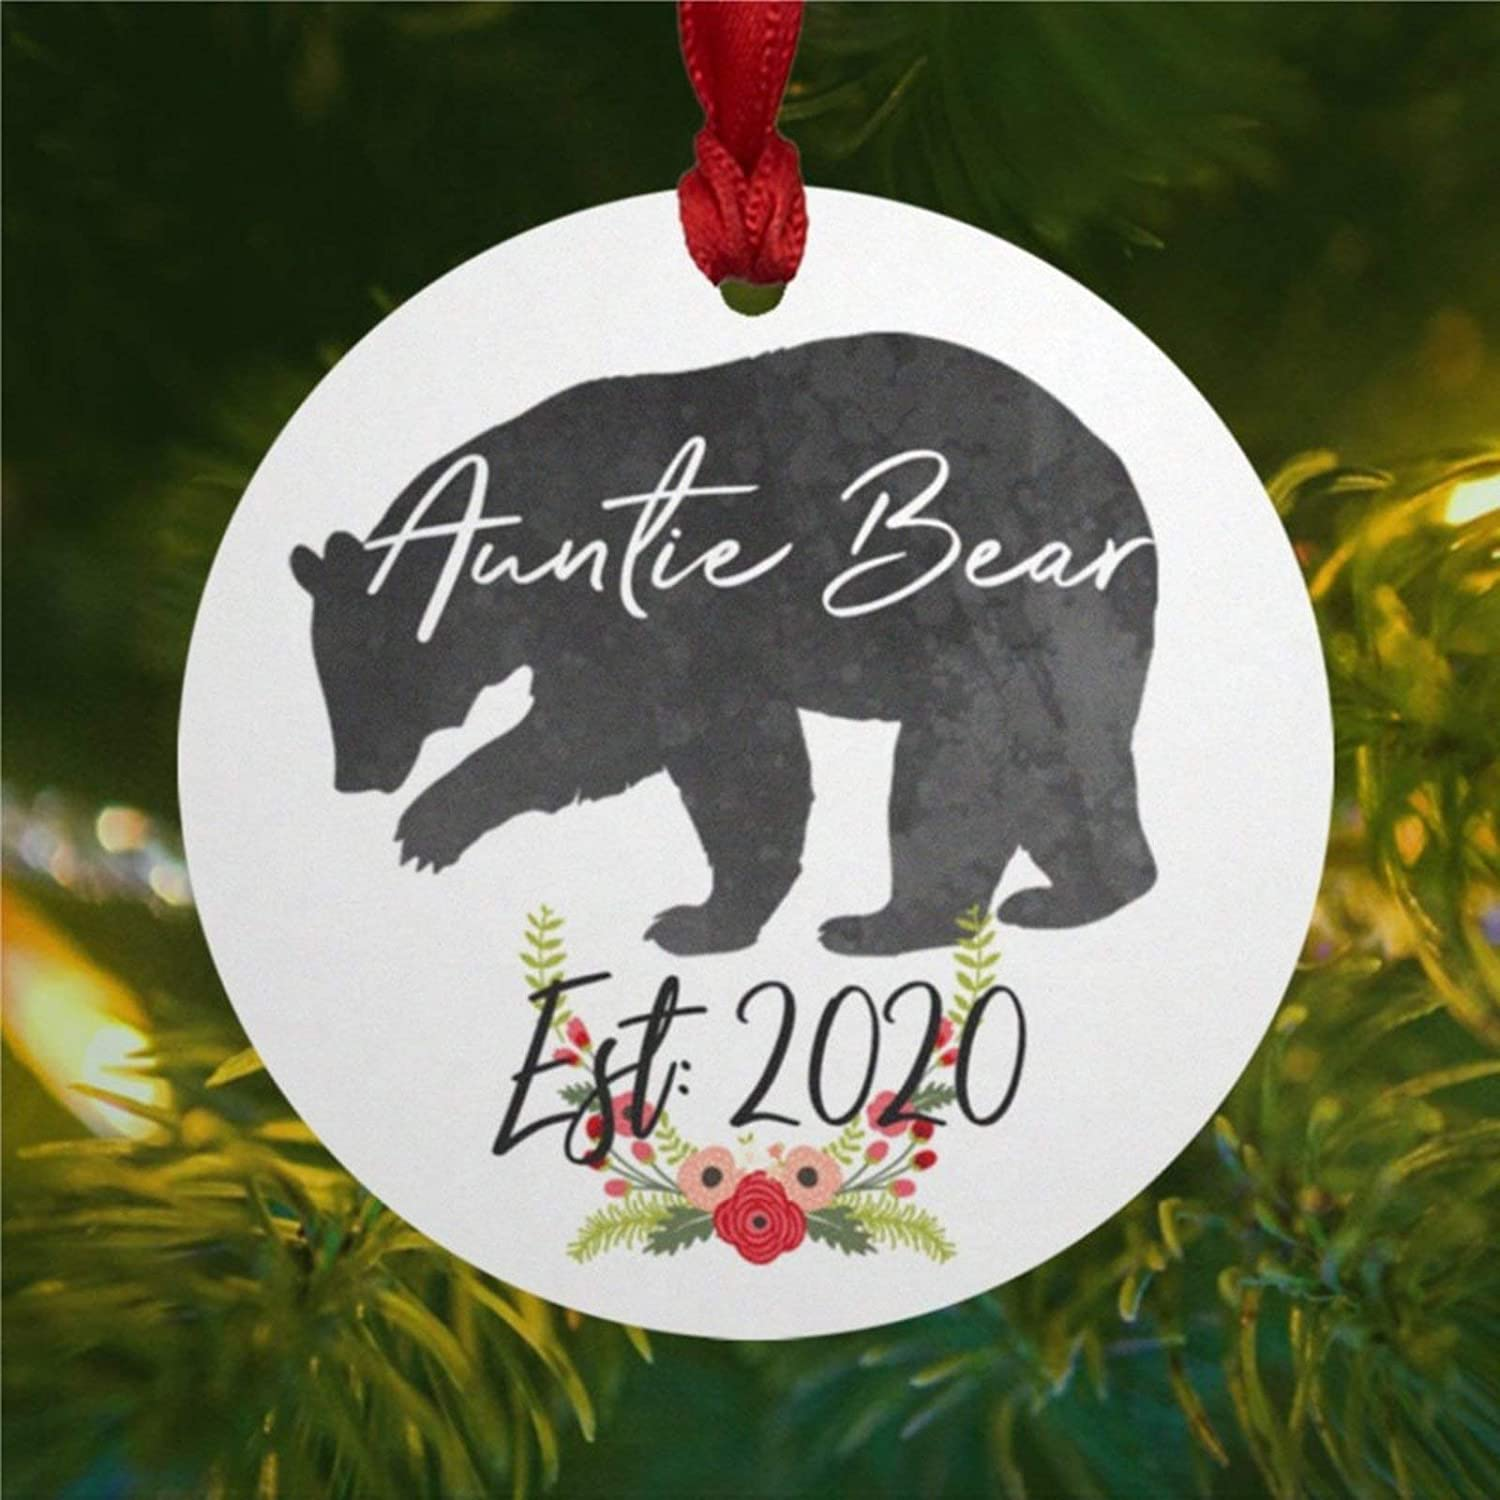 DONL9BAUER Auntie Bear Watercolor New Aunt Personalized Ceramic Art Christmas Ornament, Christmas Decorations Keepsake Present for Christmas Eve, Family,Xmas.